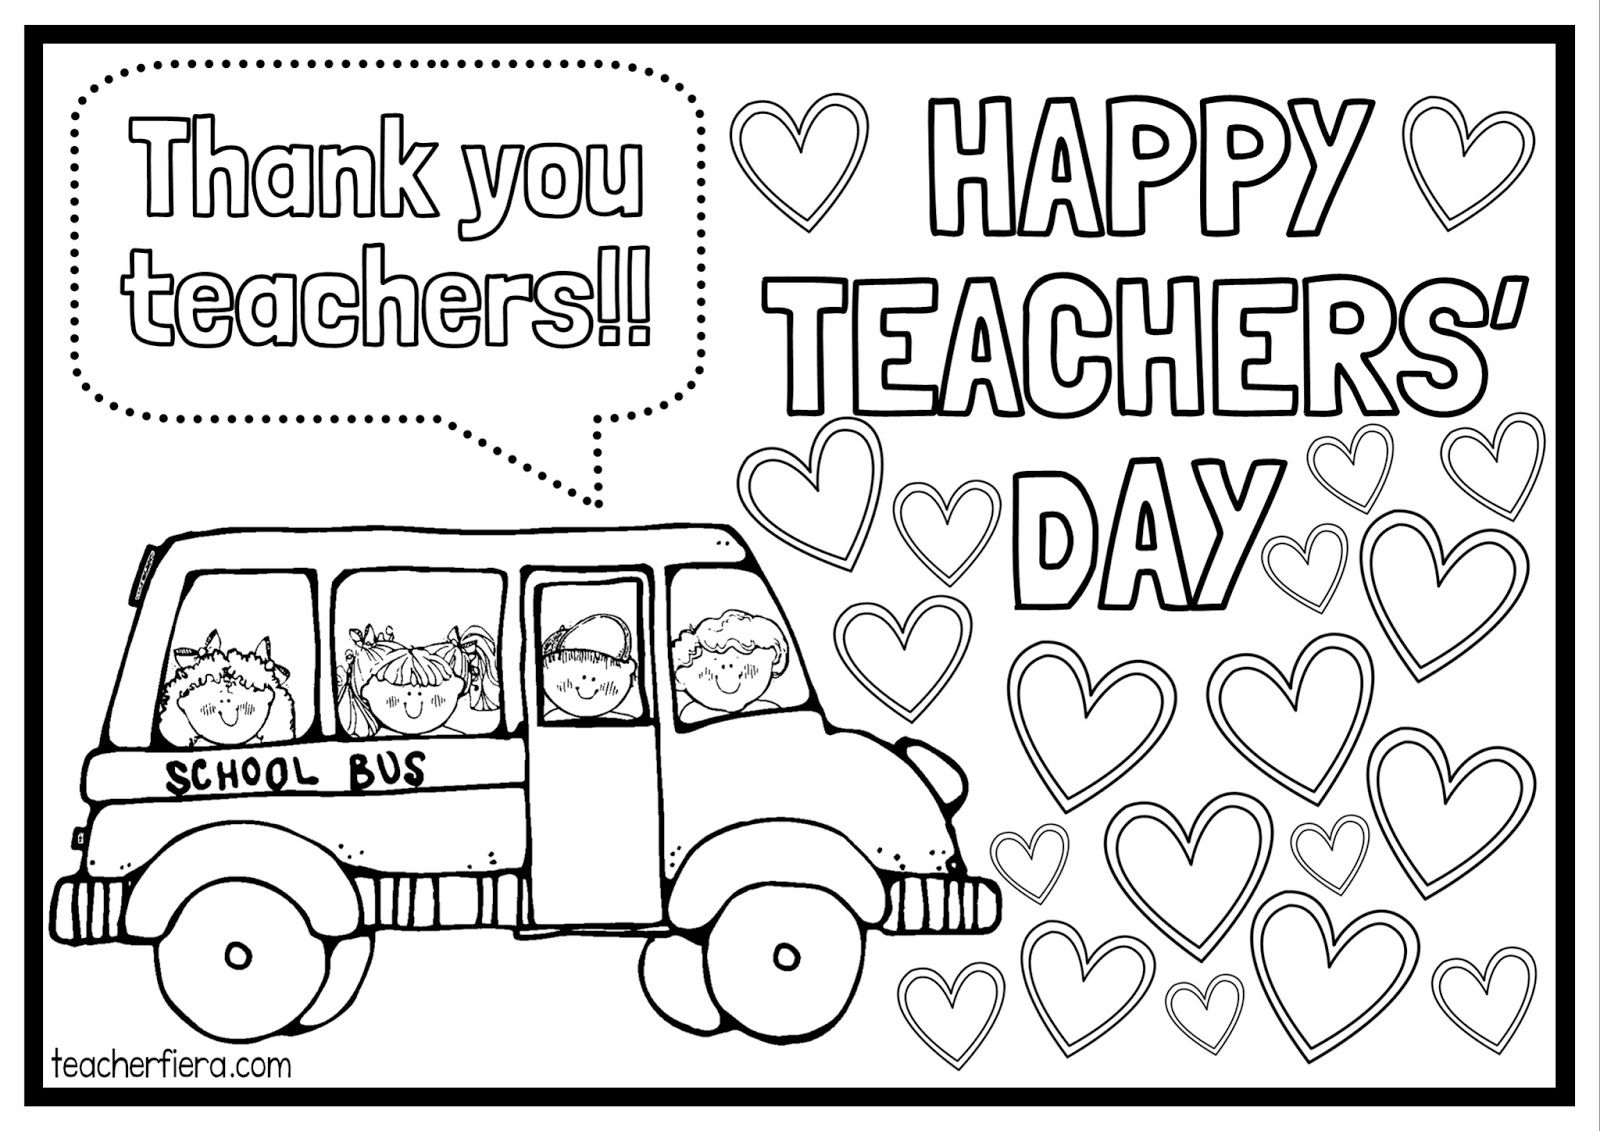 Teachers Day Coloring Pages In